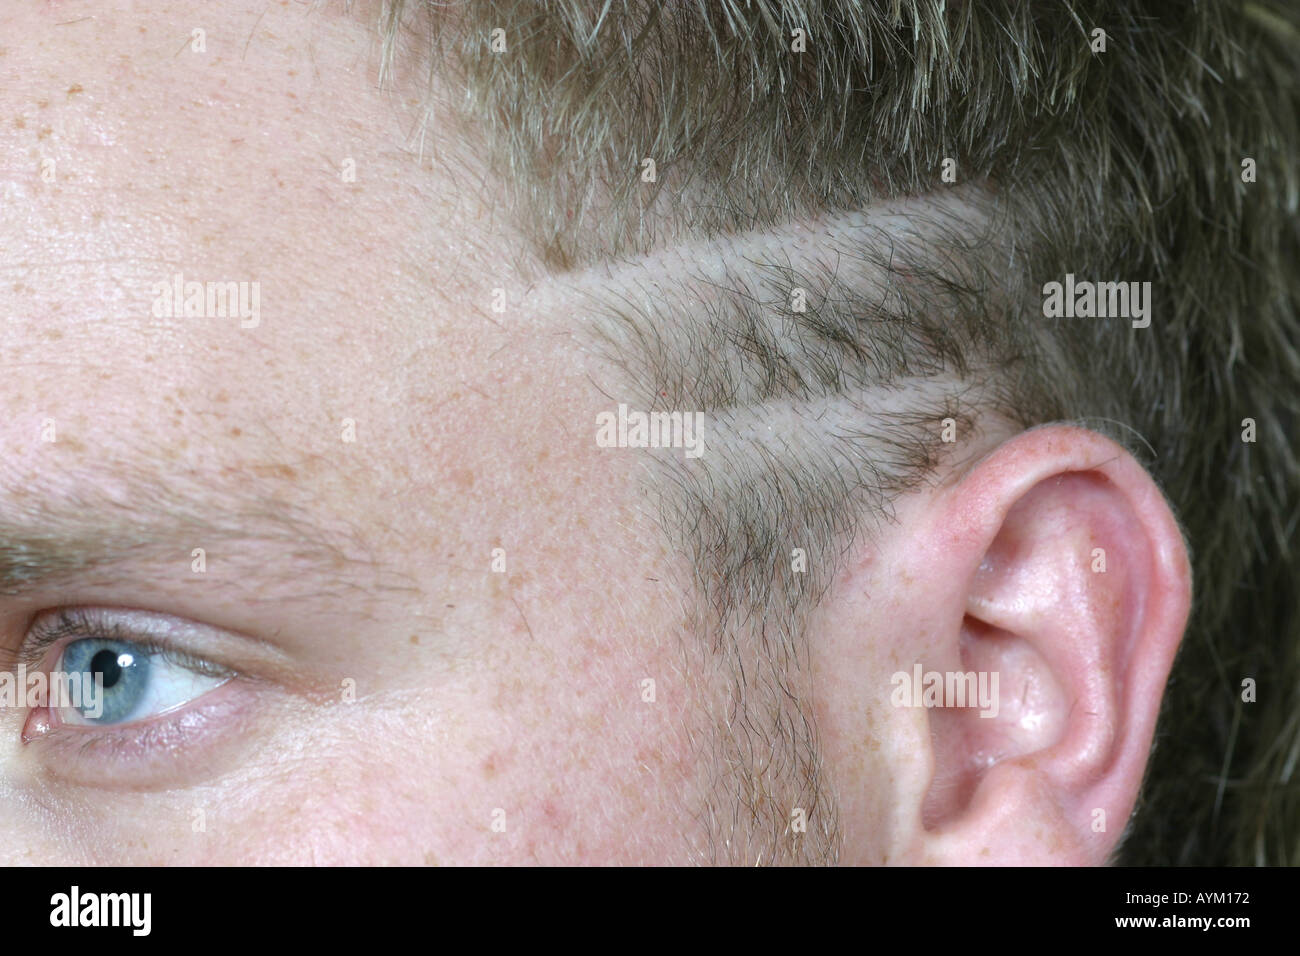 Very valuable Eyebrow shaved lines